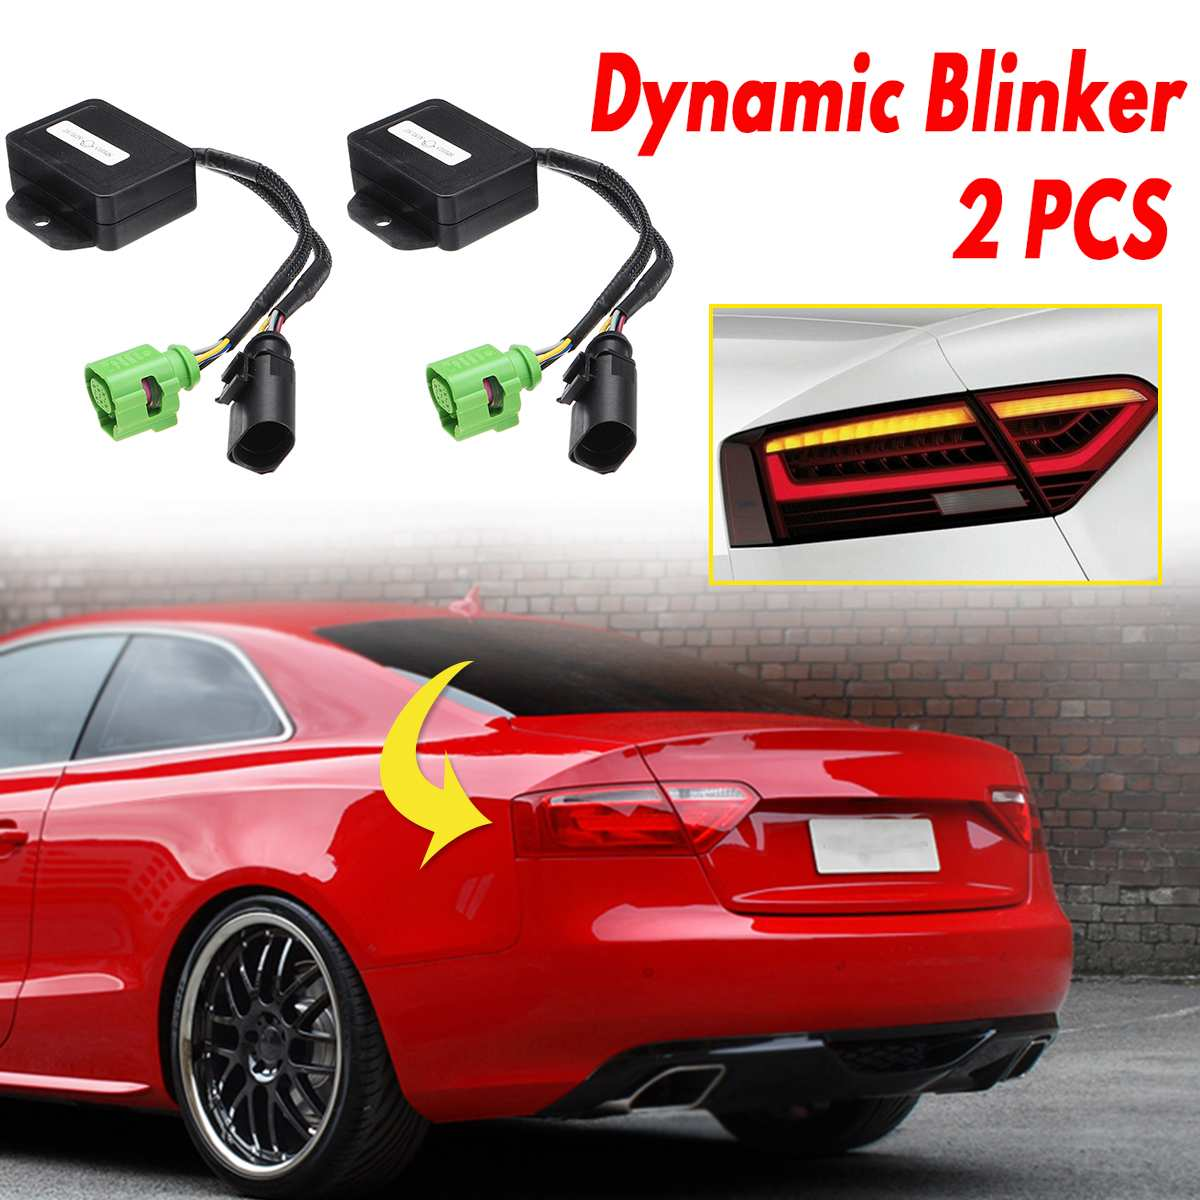 2Pcs Semi Dynamic Blinker Taillights Module Turn Signal LED Turn Signal Lights Cable Wire For Audi A5 8T 2007-2018